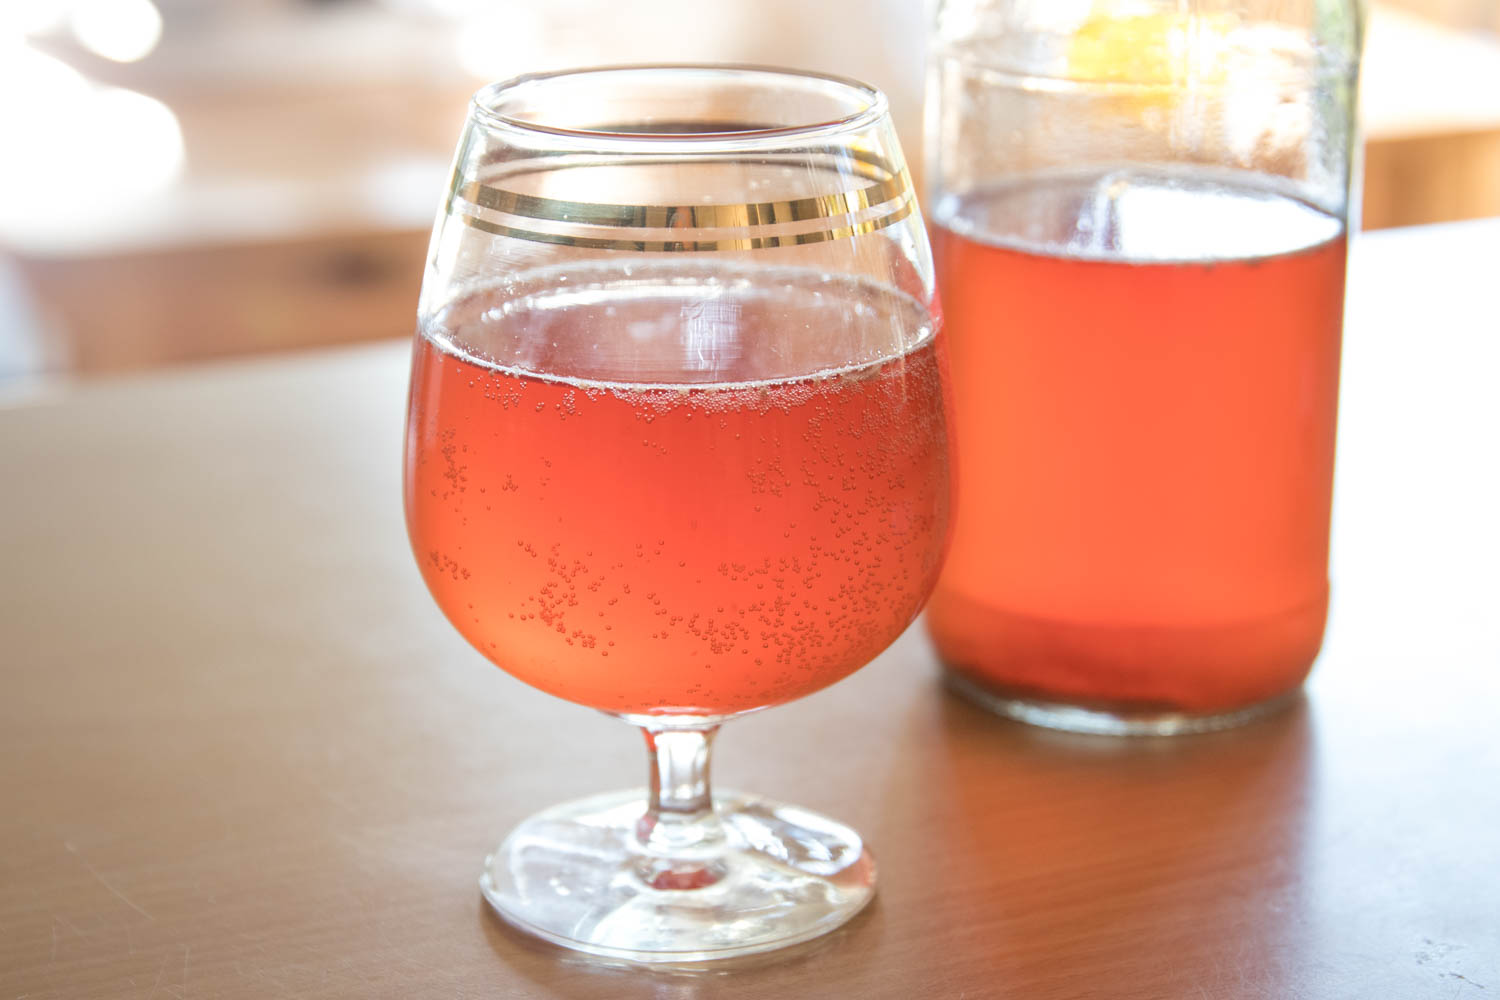 Bubbly, delicious homemade kombucha.